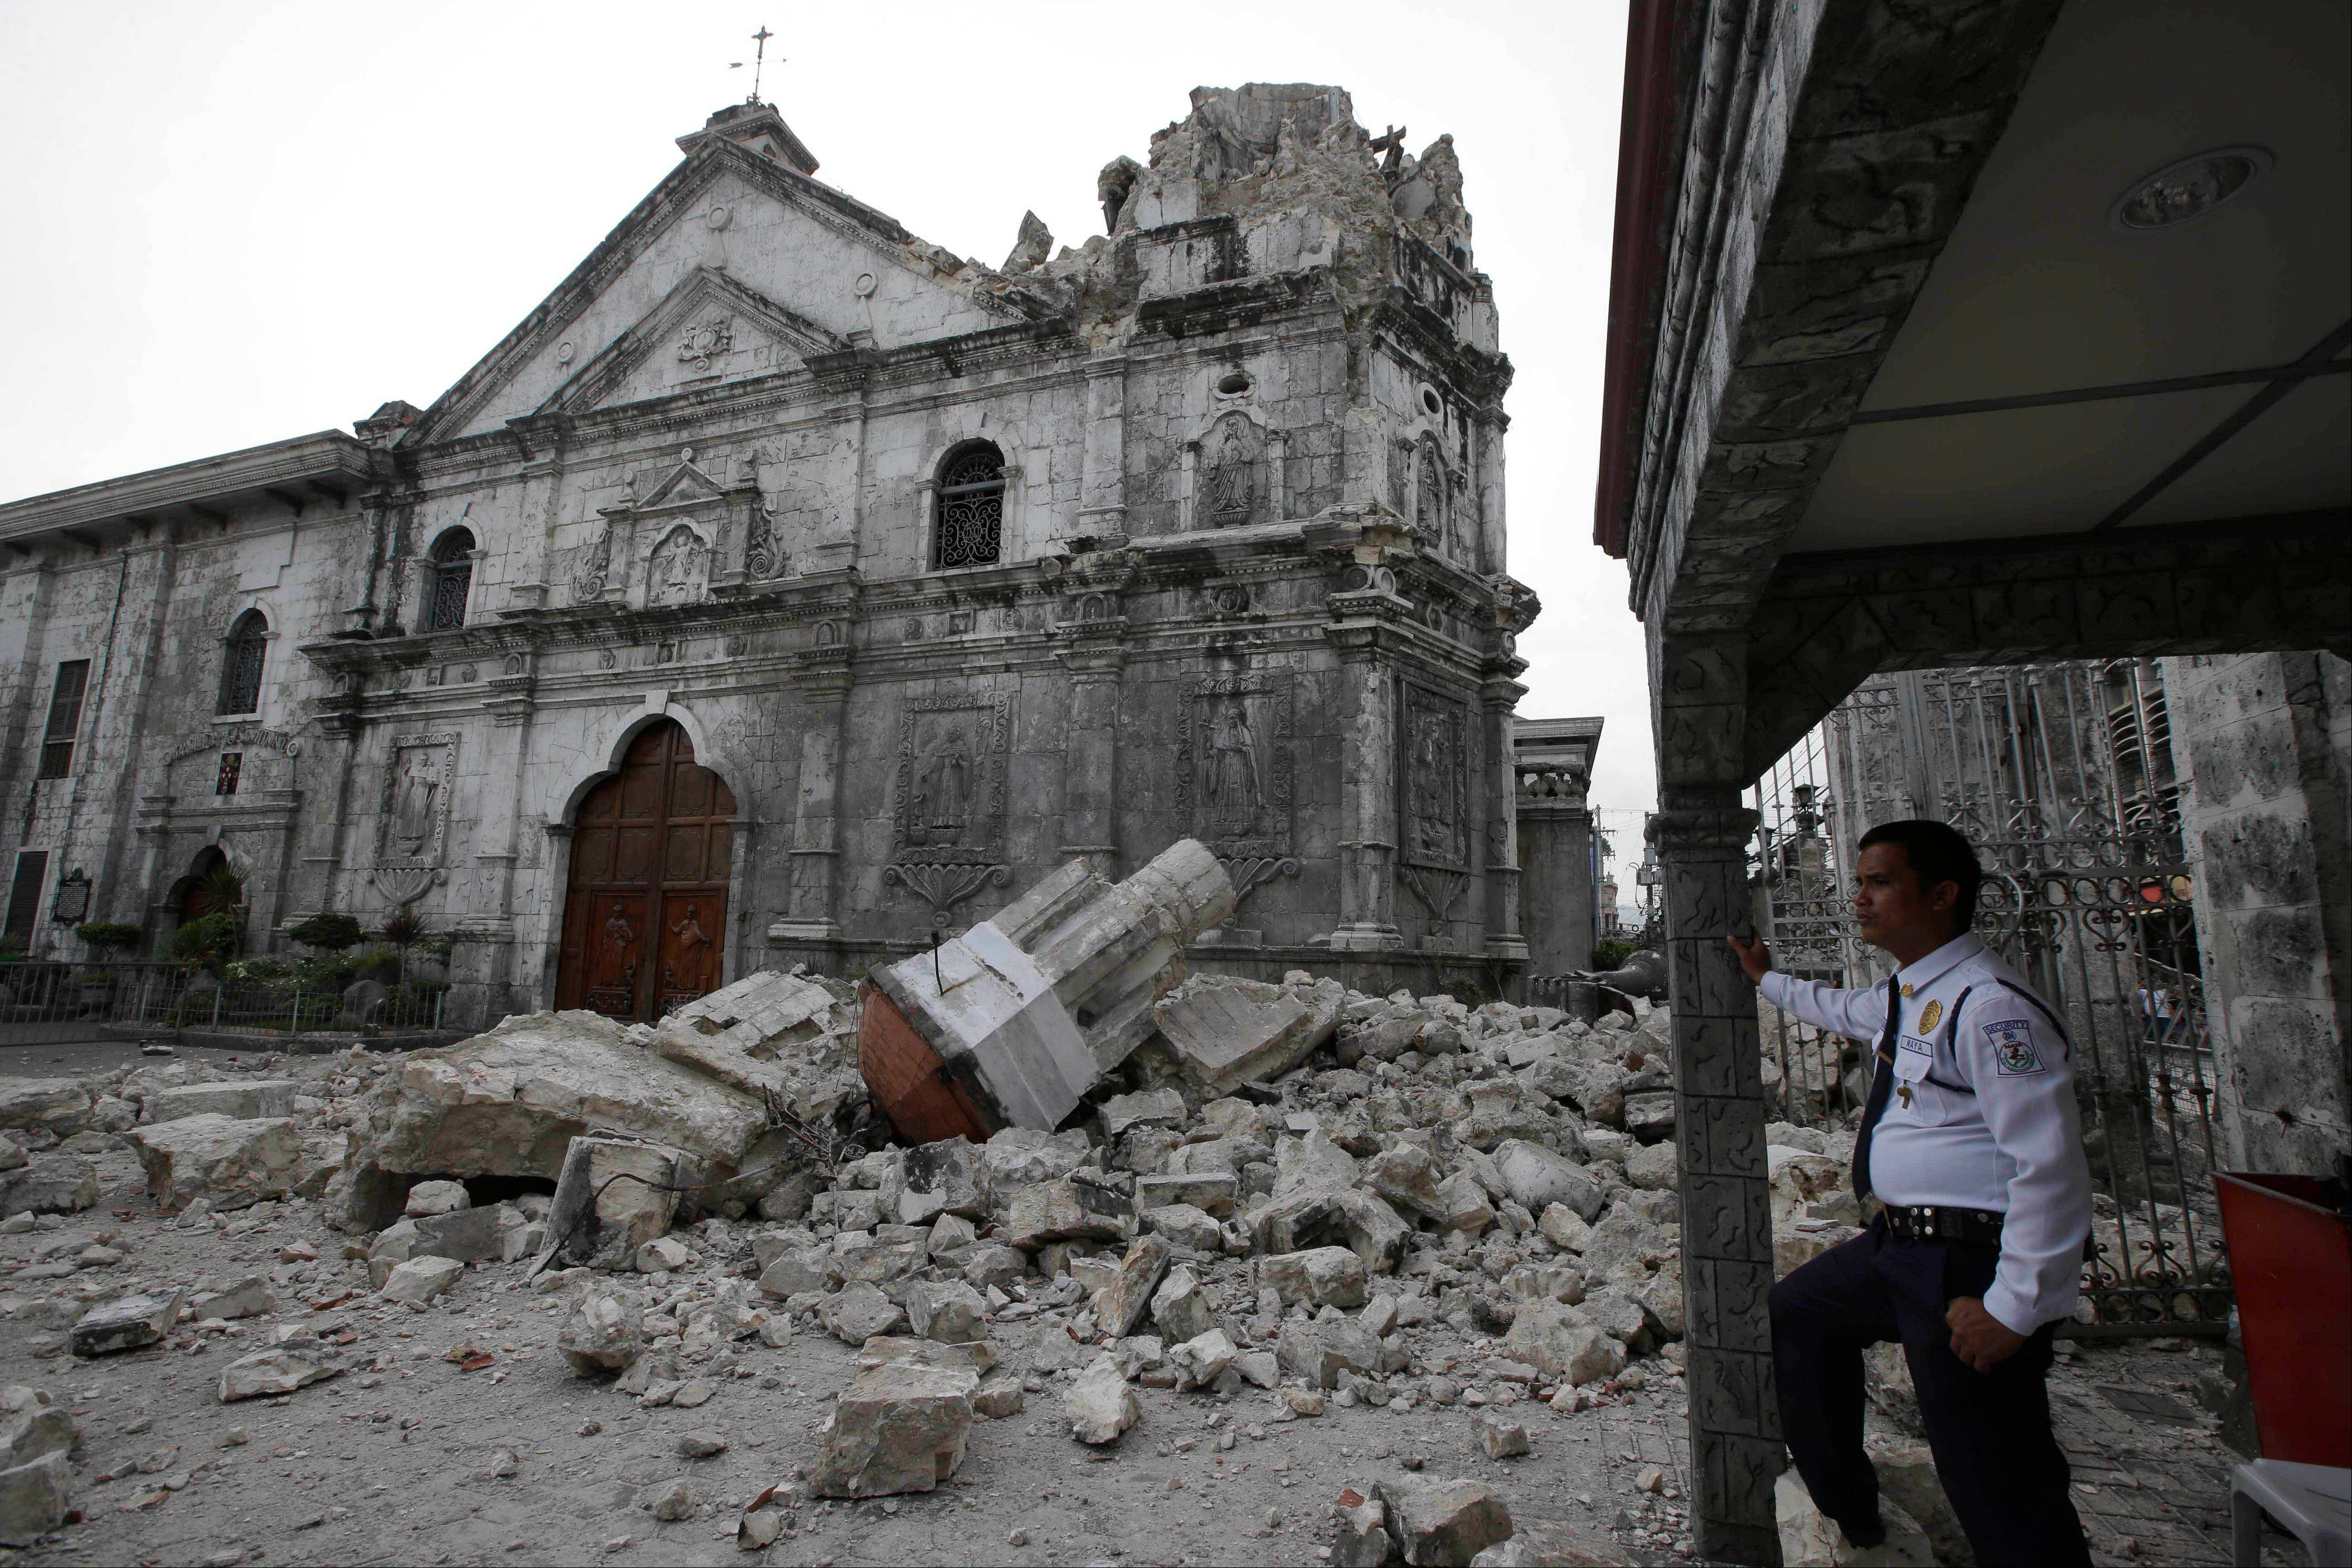 A private guard stands near the damaged Basilica of the Holy Child following a 7.2-magnitude earthquake that hit Cebu city in central Philippines and toppled the bell tower of the Philippines' oldest church Tuesday, Oct. 15, 2013. The tremor collapsed buildings, cracked roads and toppled the bell tower of the church Tuesday morning, causing multiple deaths across the central region and sending terrified residents into deadly stampedes.